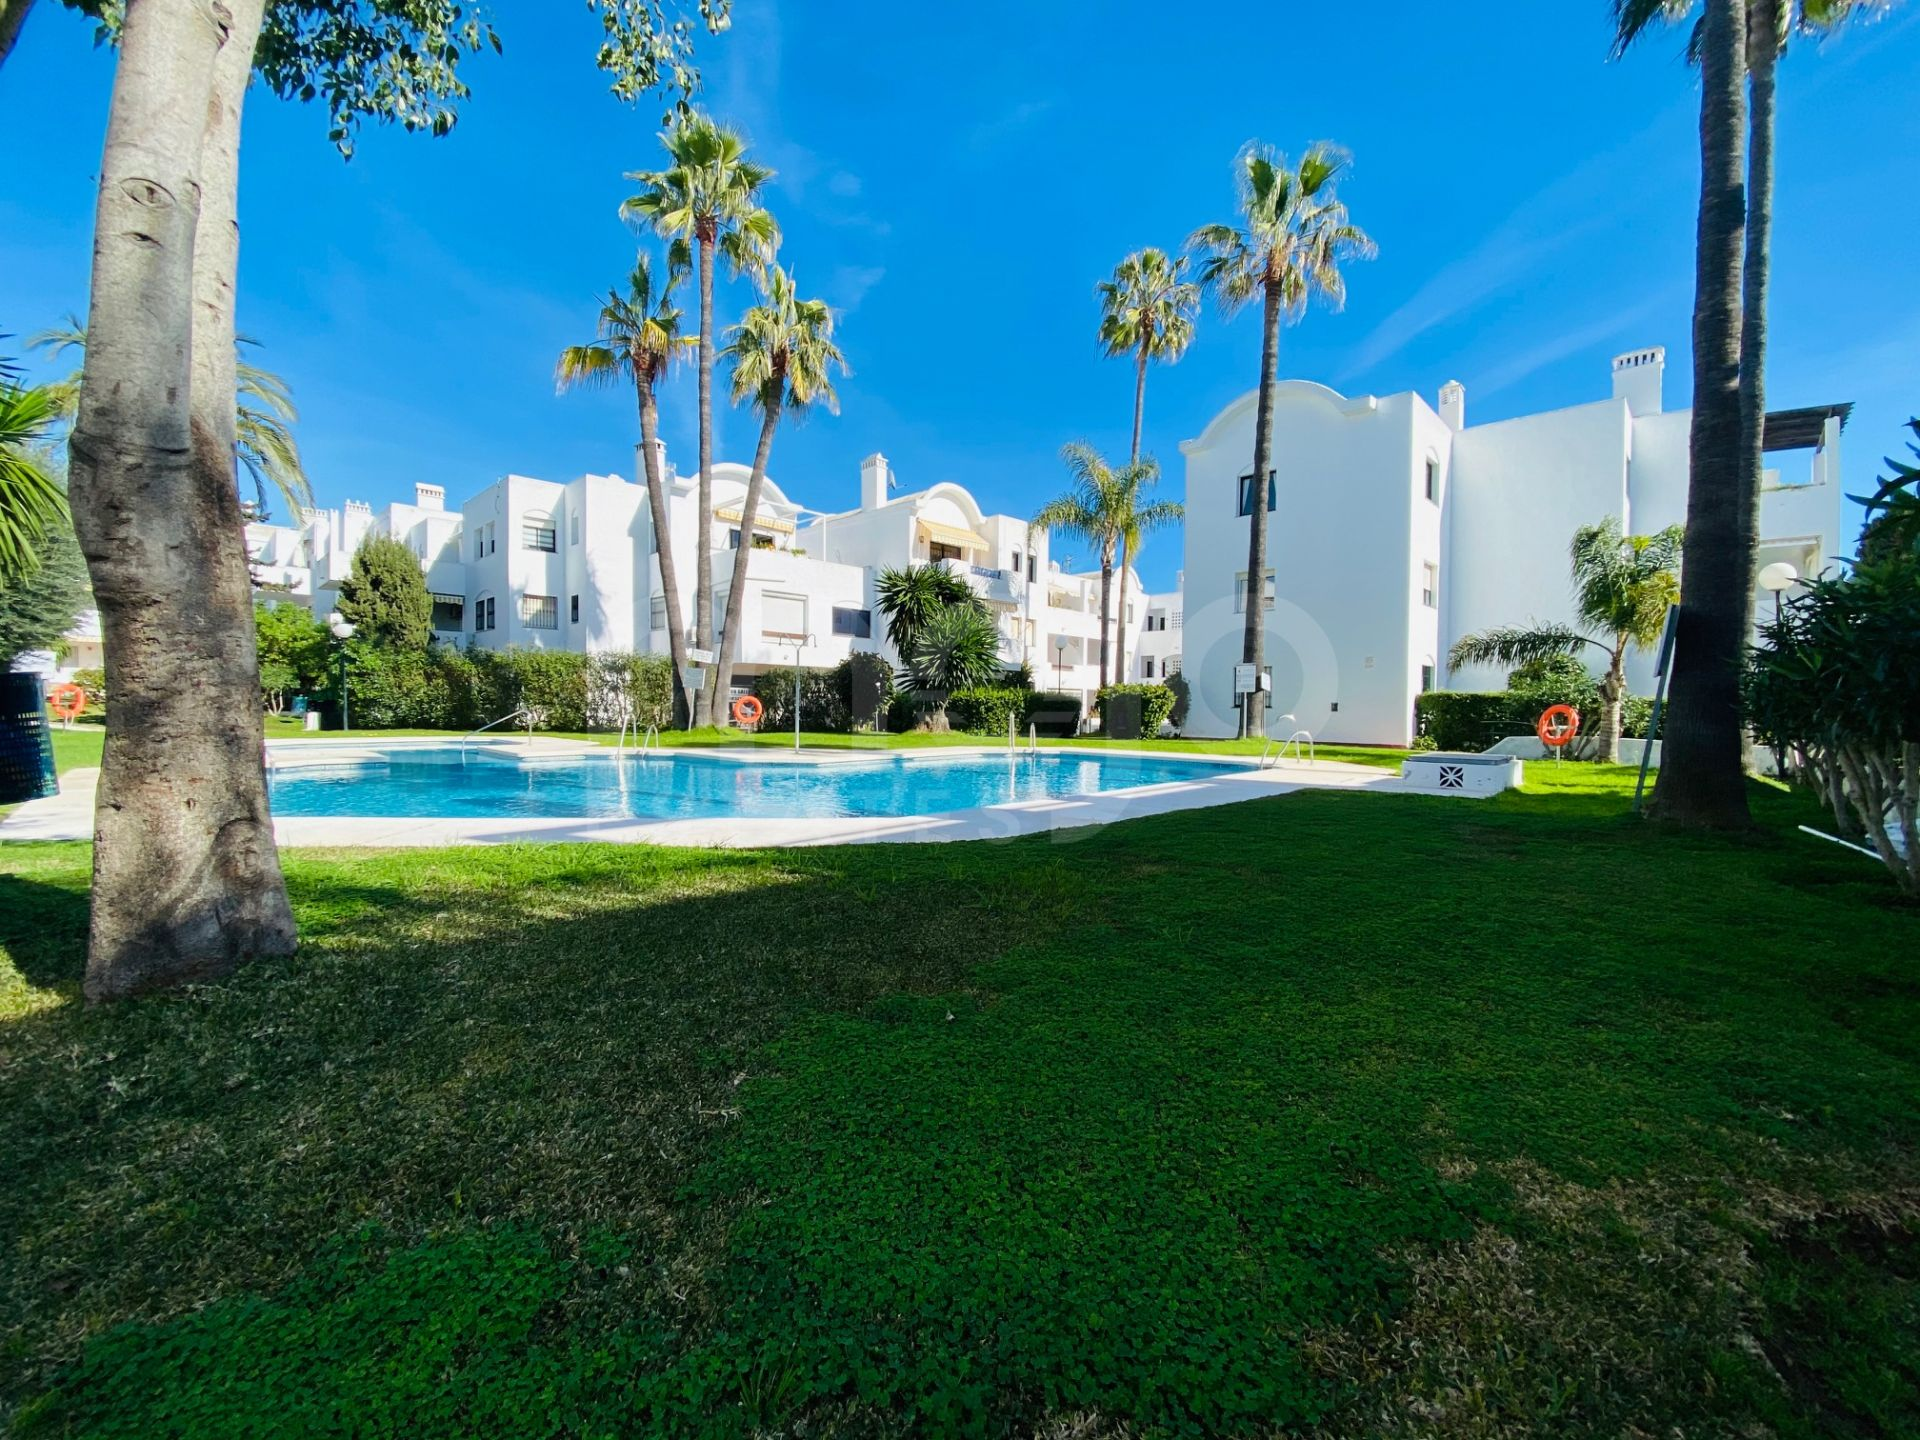 Appartement begane grond te koop in New Golden Mile, Estepona